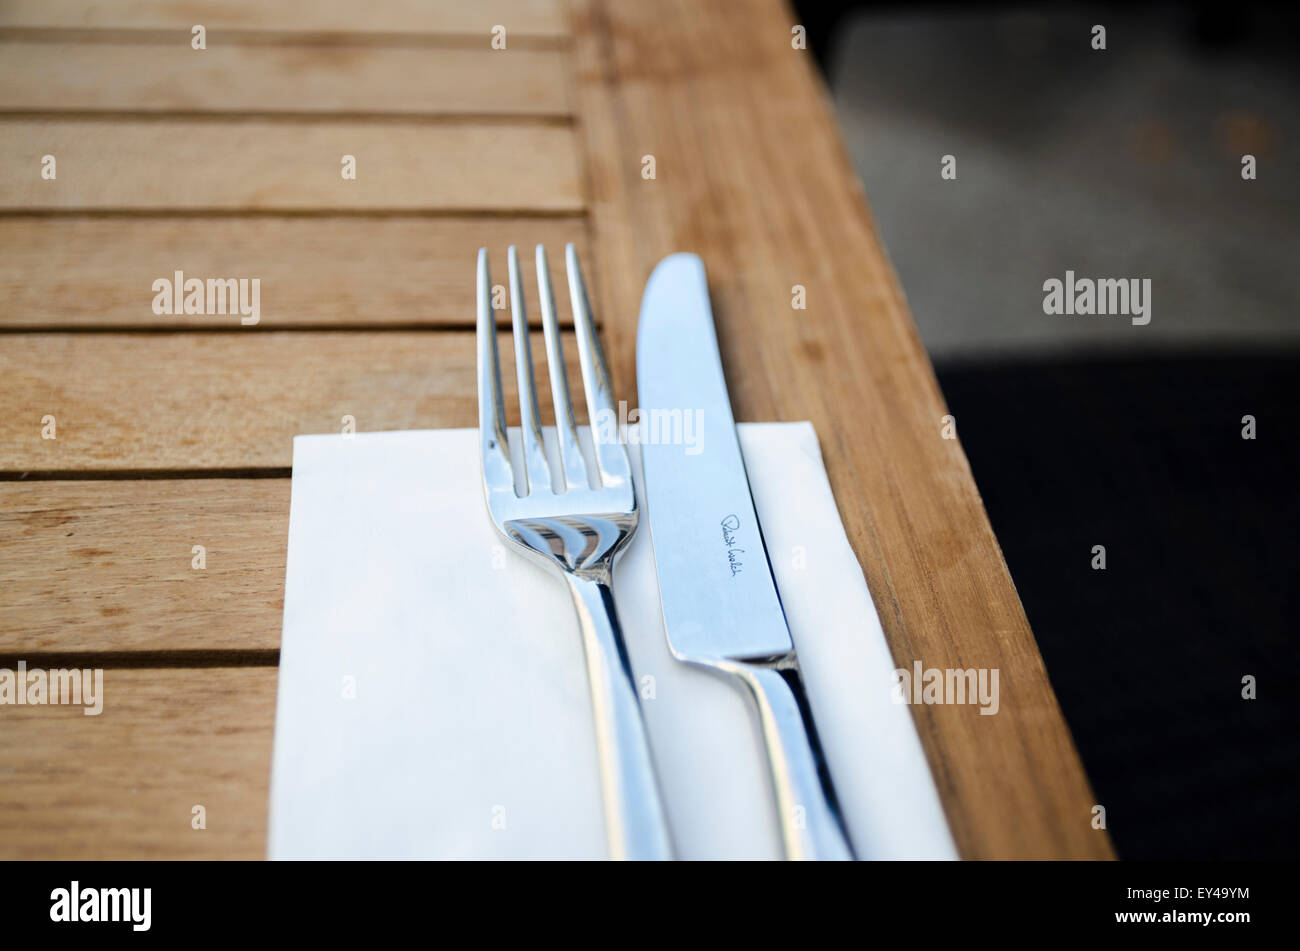 Cutlery on the wooden table - Stock Image